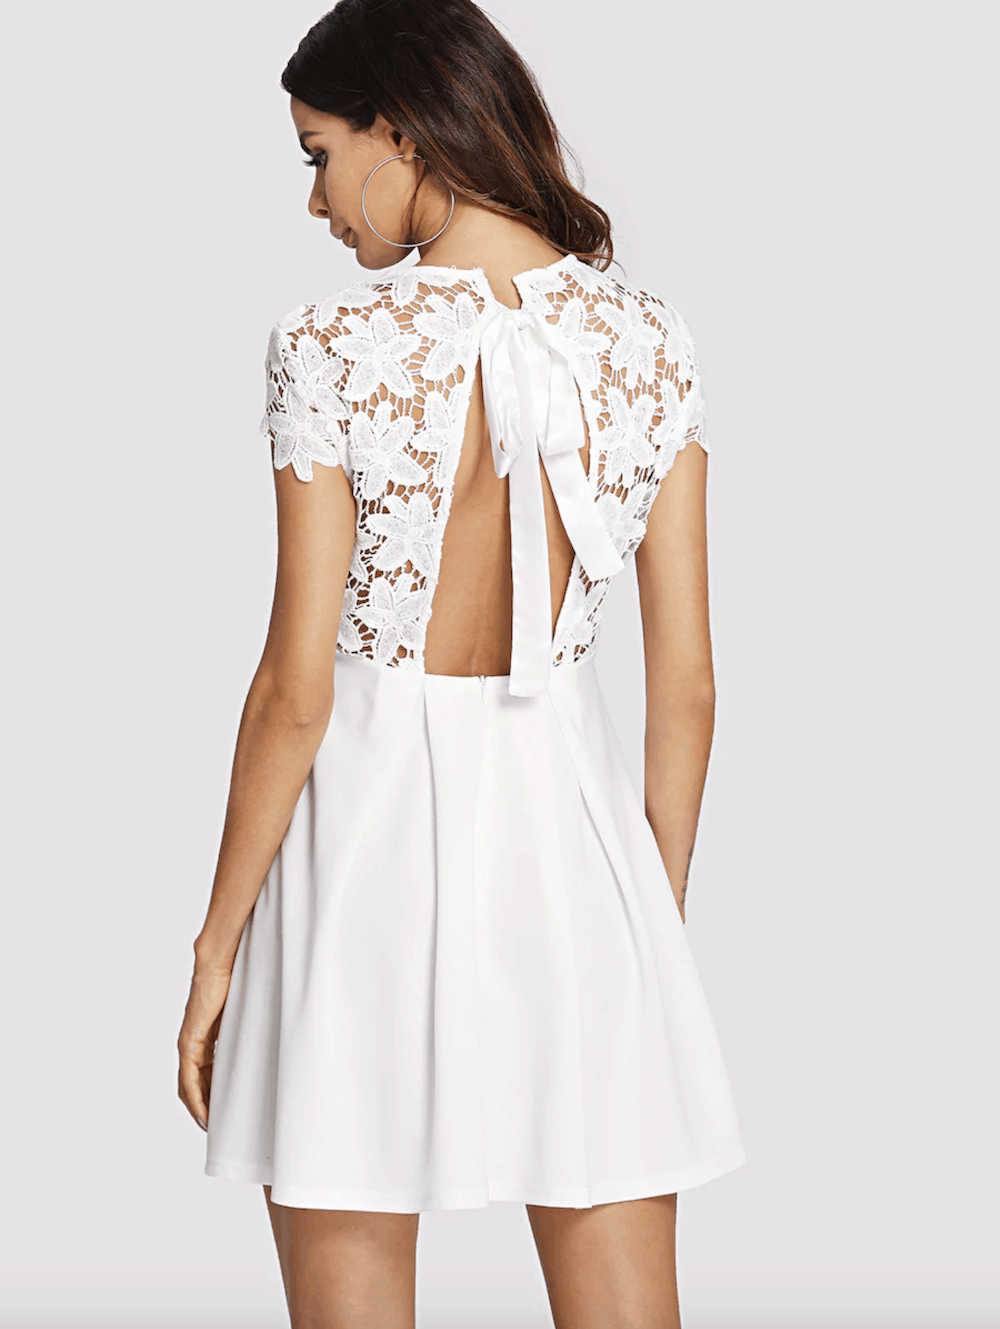 Bridal Shower Dress for the Bride White Embroidery Lace Open Back Dress